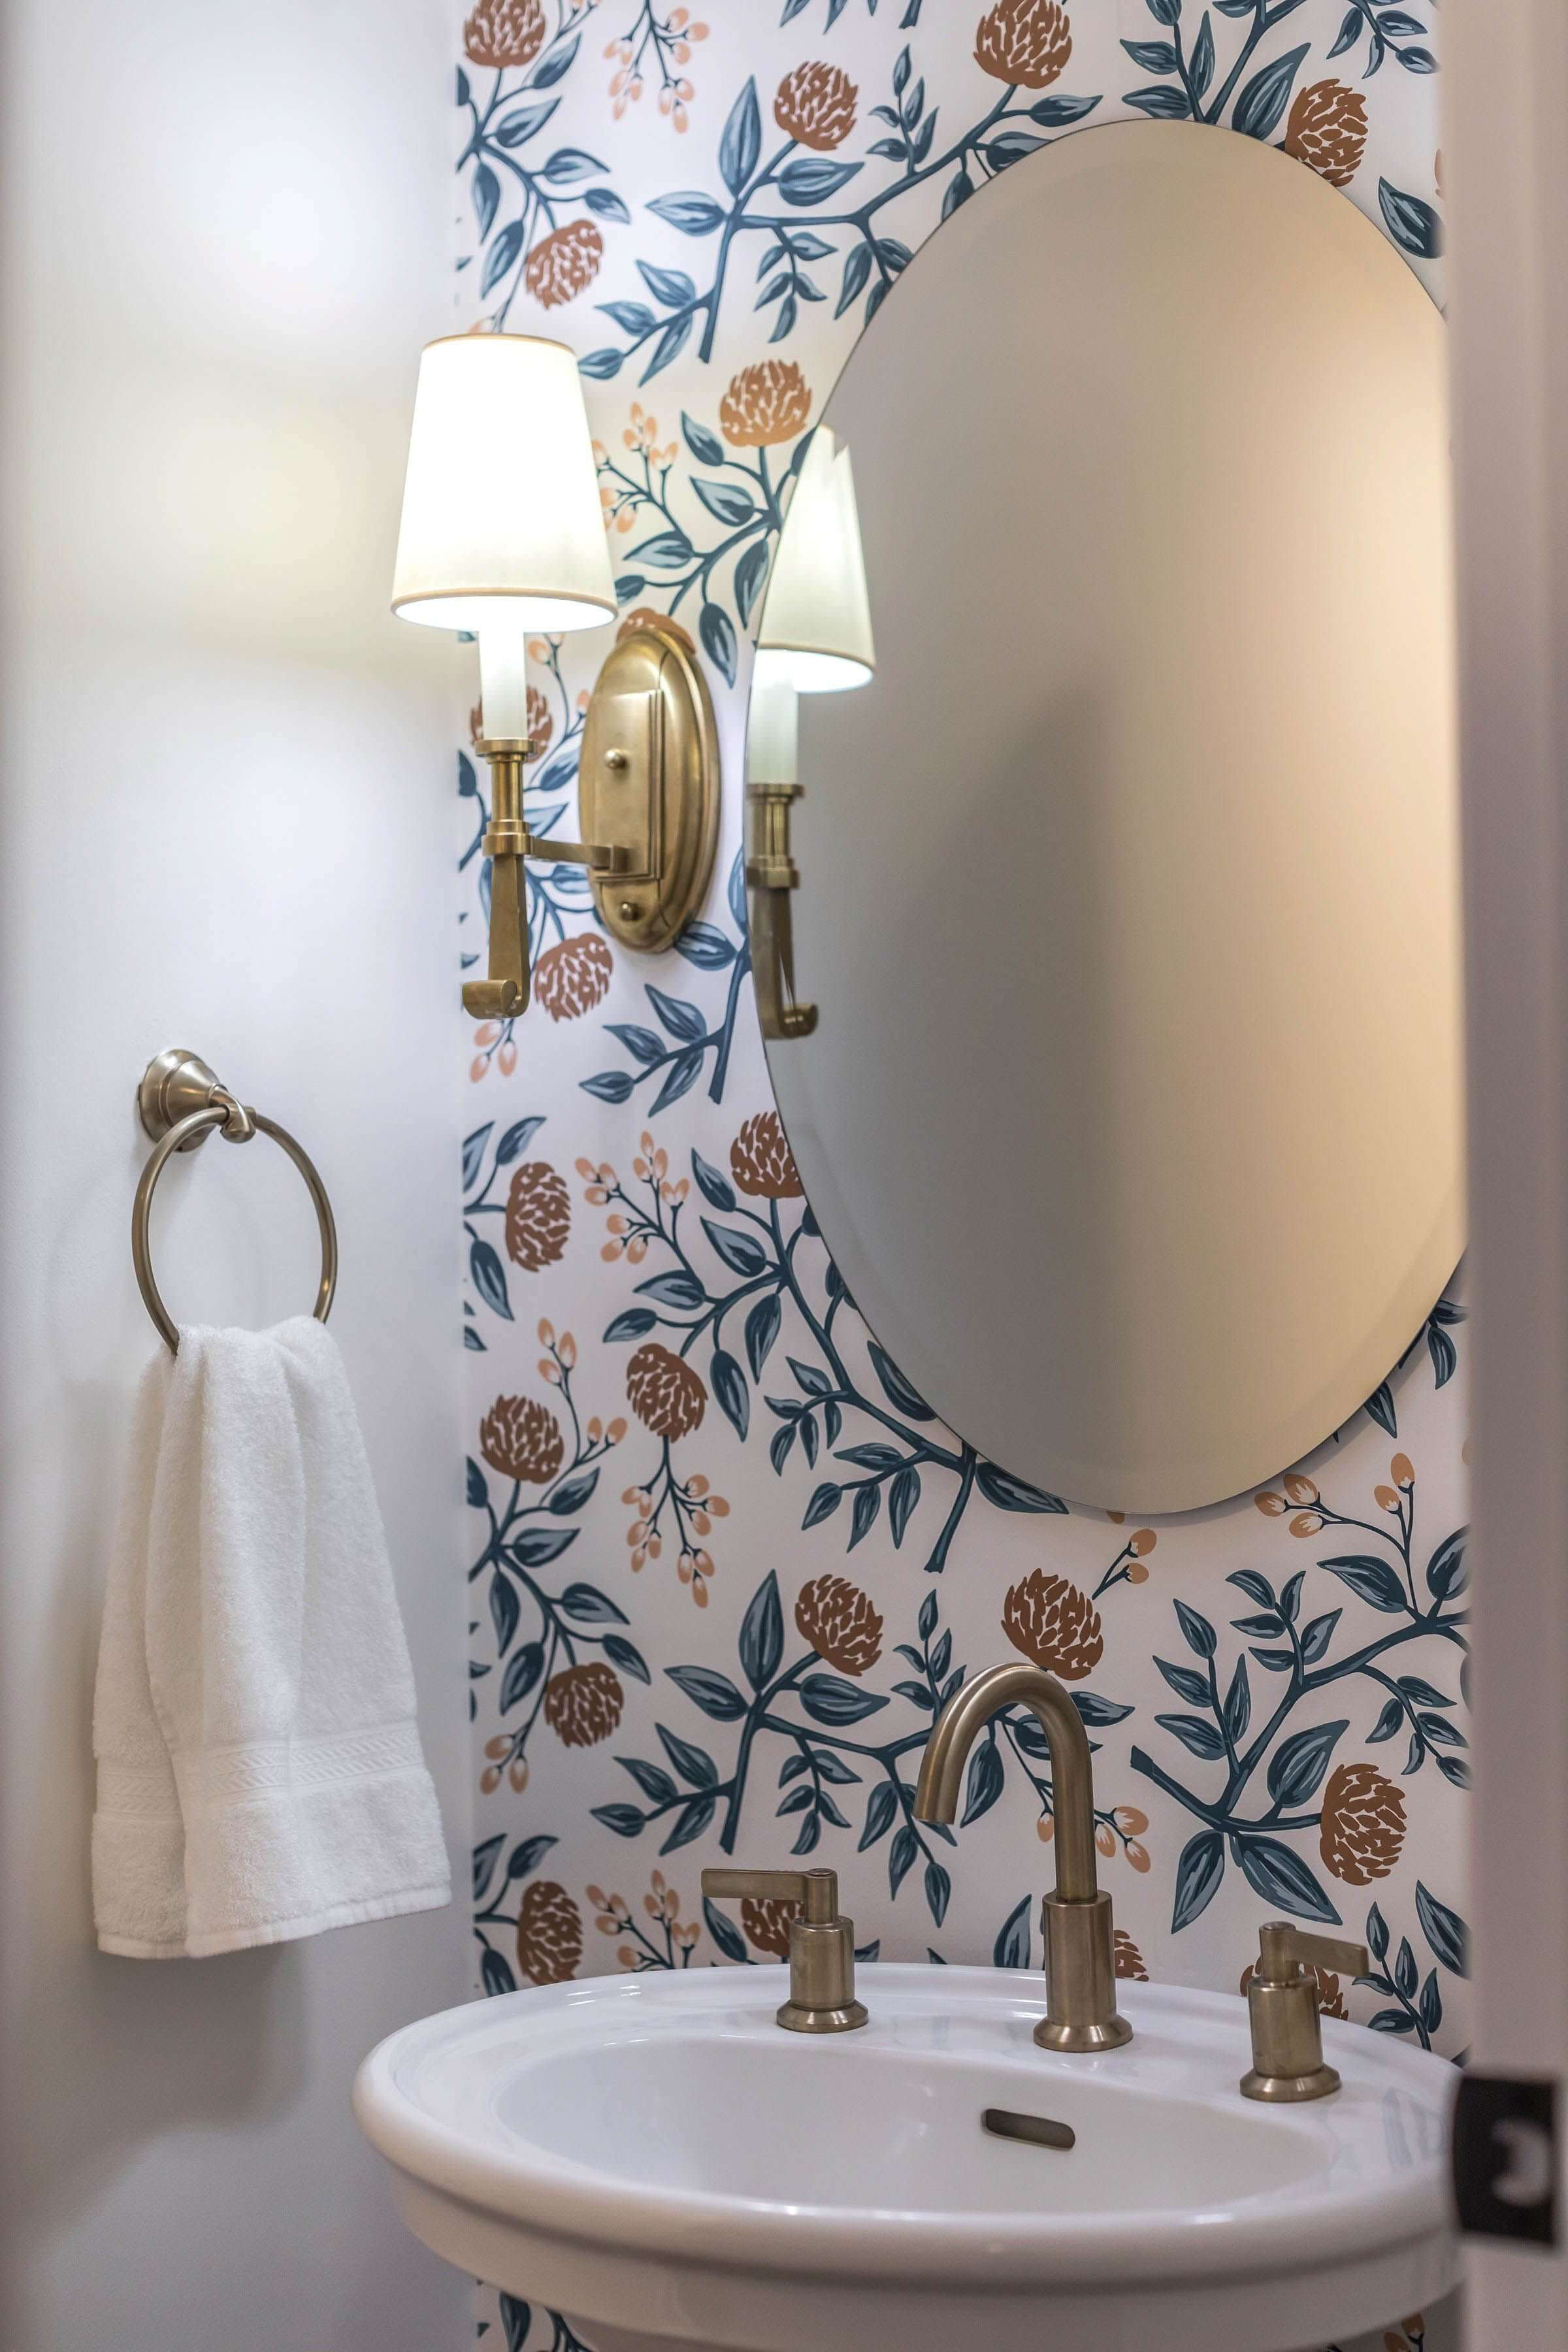 NICE SMALL BATHROOM REMODEL IDEAS PAINTED FLORAL WALL AND OVAL MIRROR